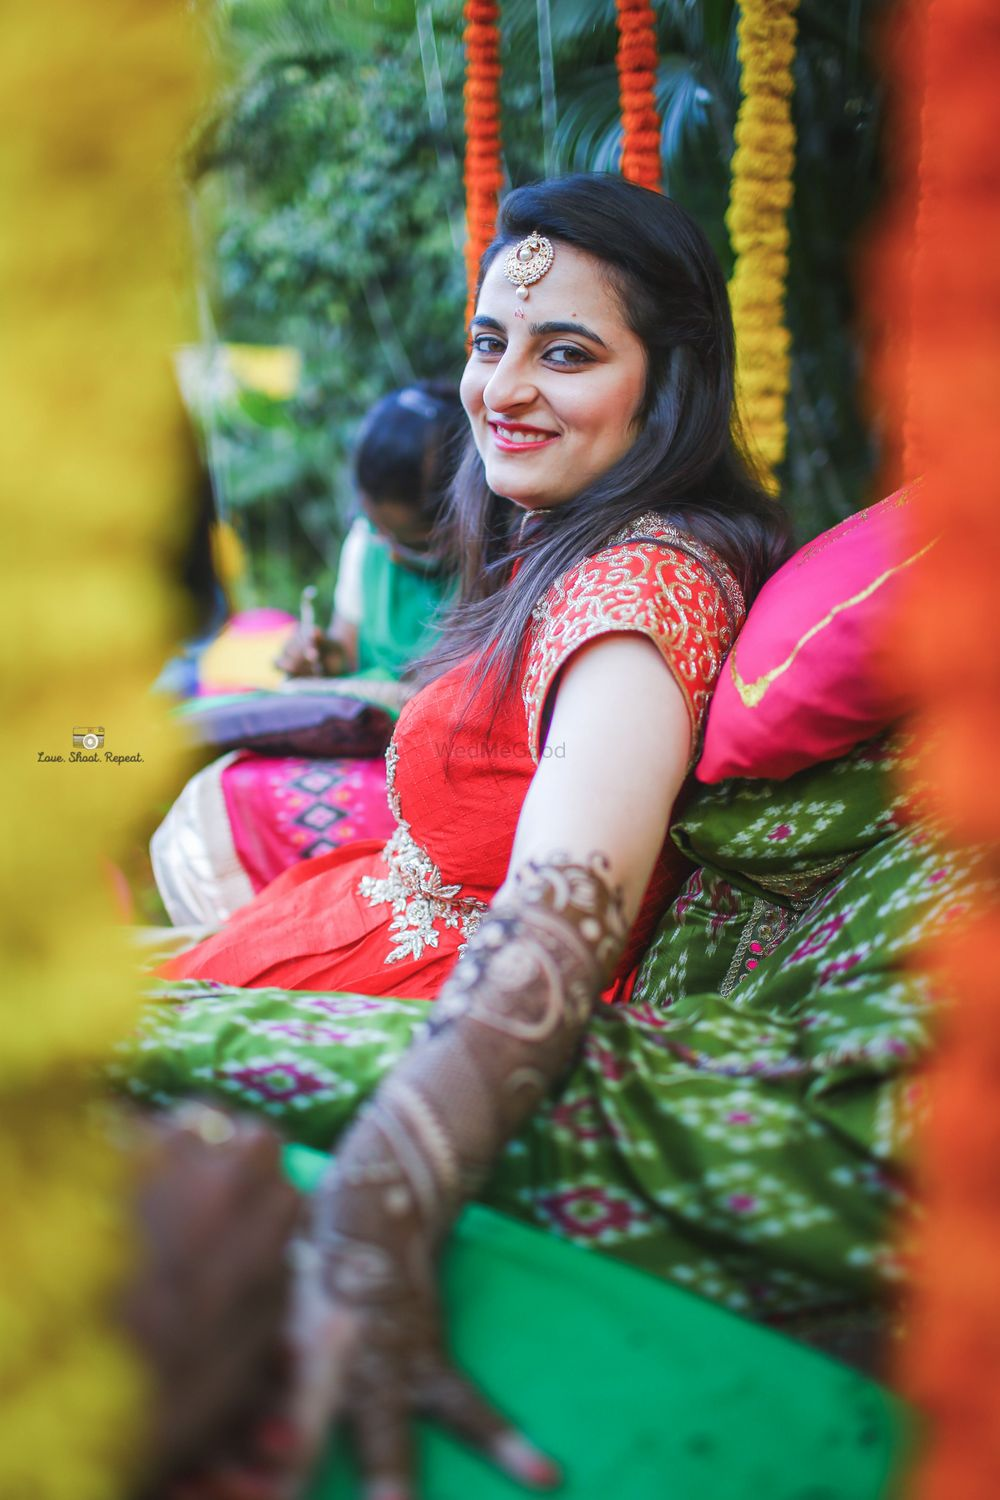 Photo From Himani + Devansh - By Love.shoot.repeat